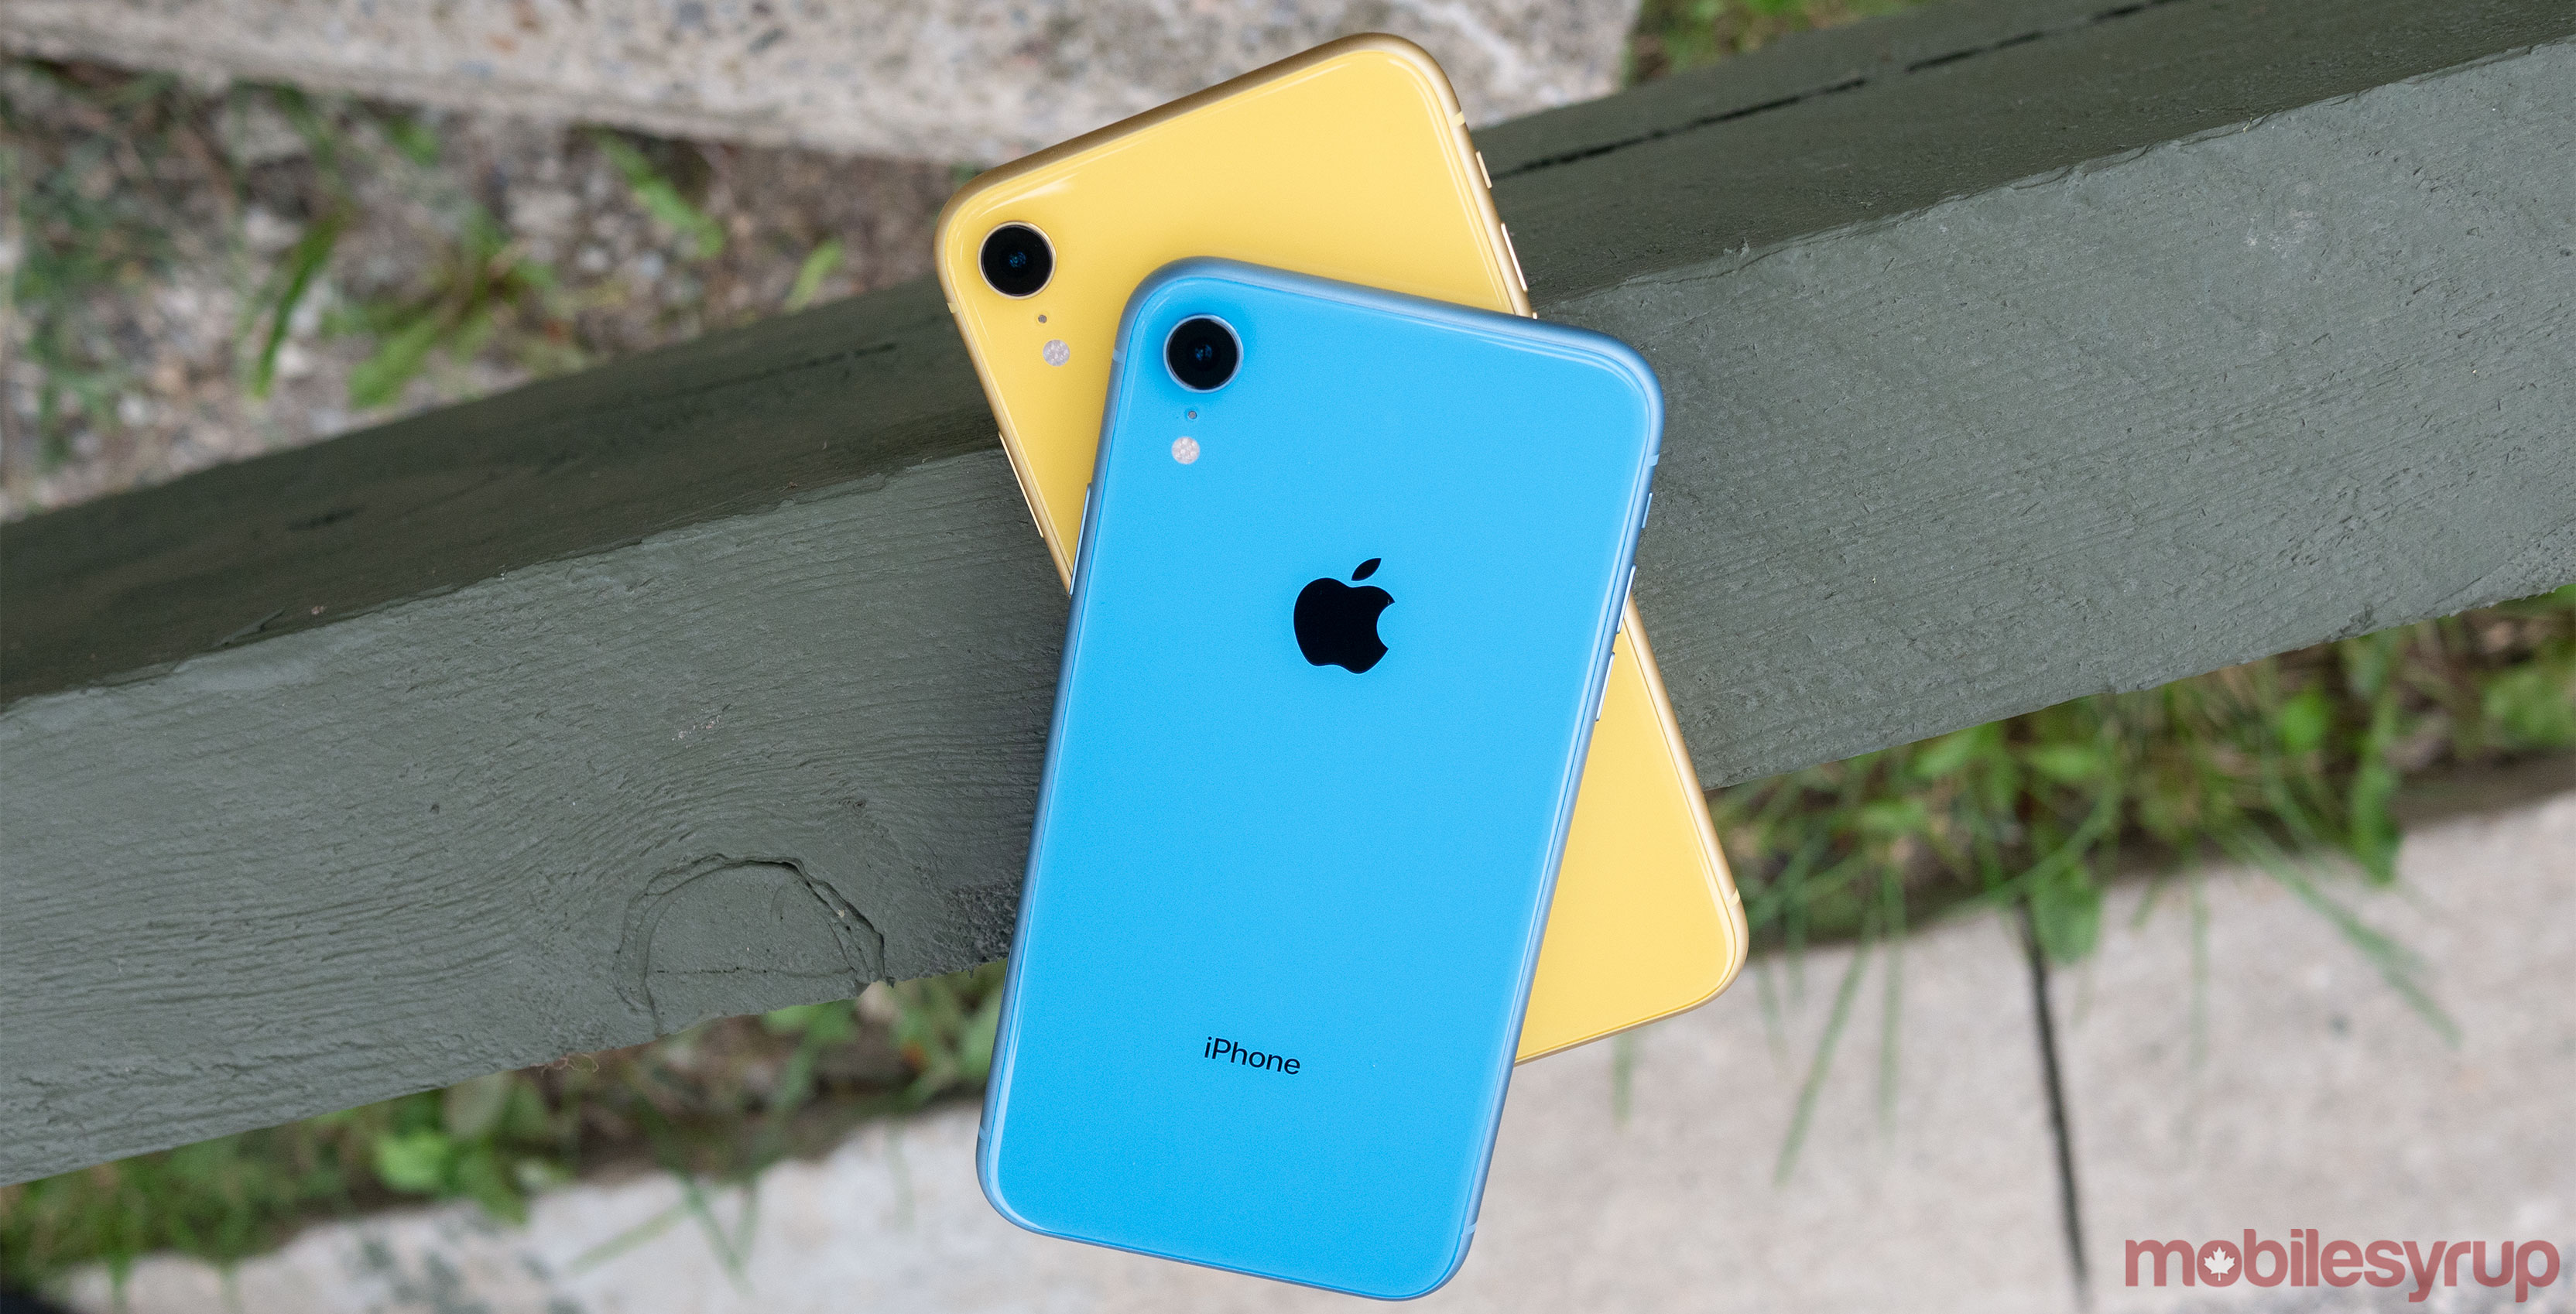 iPhone XR Blue and Yellow